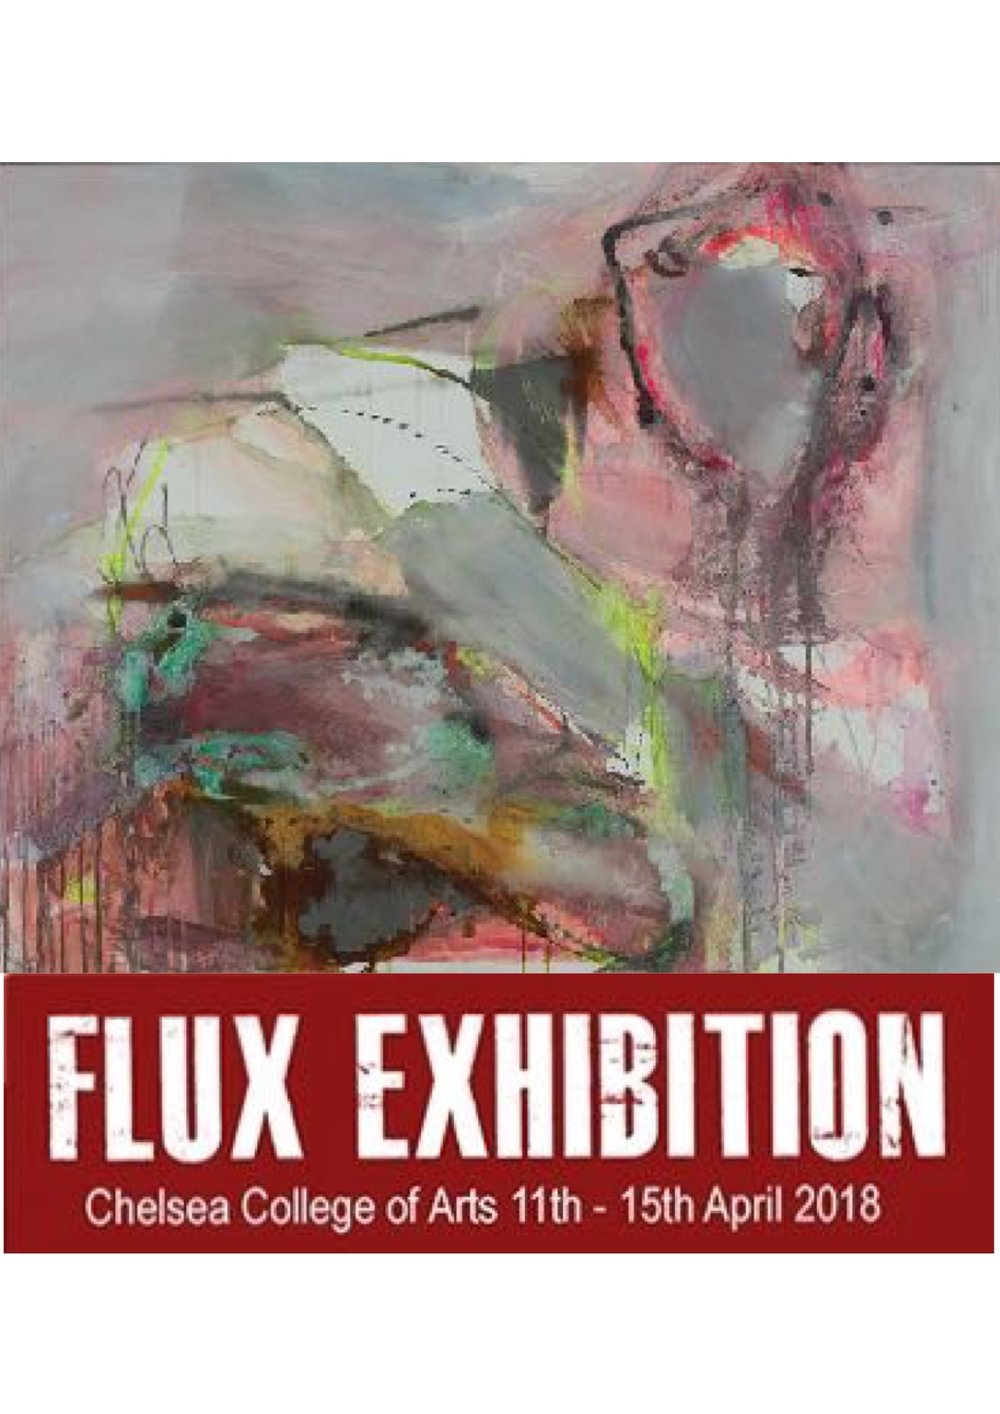 For the first time, I will have work on show at this prestigious exhibition at Chelsea College of Arts. Please click on the link for your free ticketsPrivate View 11th April 6.30 -9.30 pm.      www.fluxexhibition.com/tickets/    -